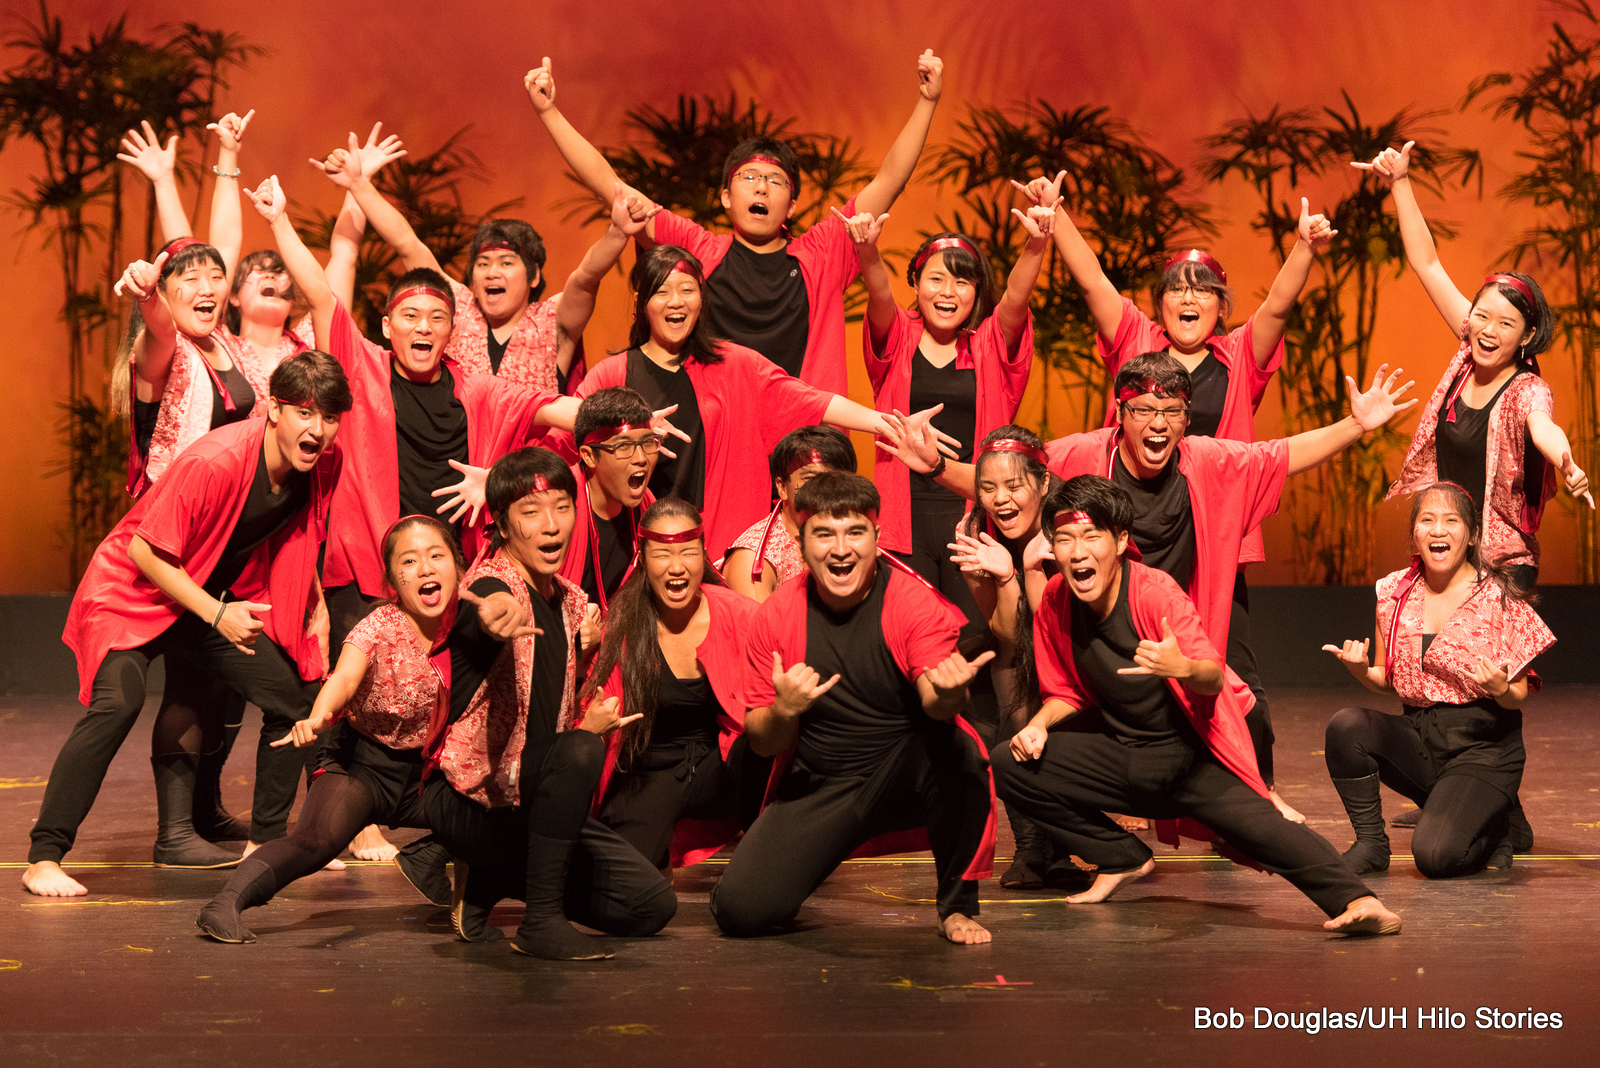 Group photo, lots of energy, hands thrown out in different directions. the dancers wear black and orange. Orange lighting.